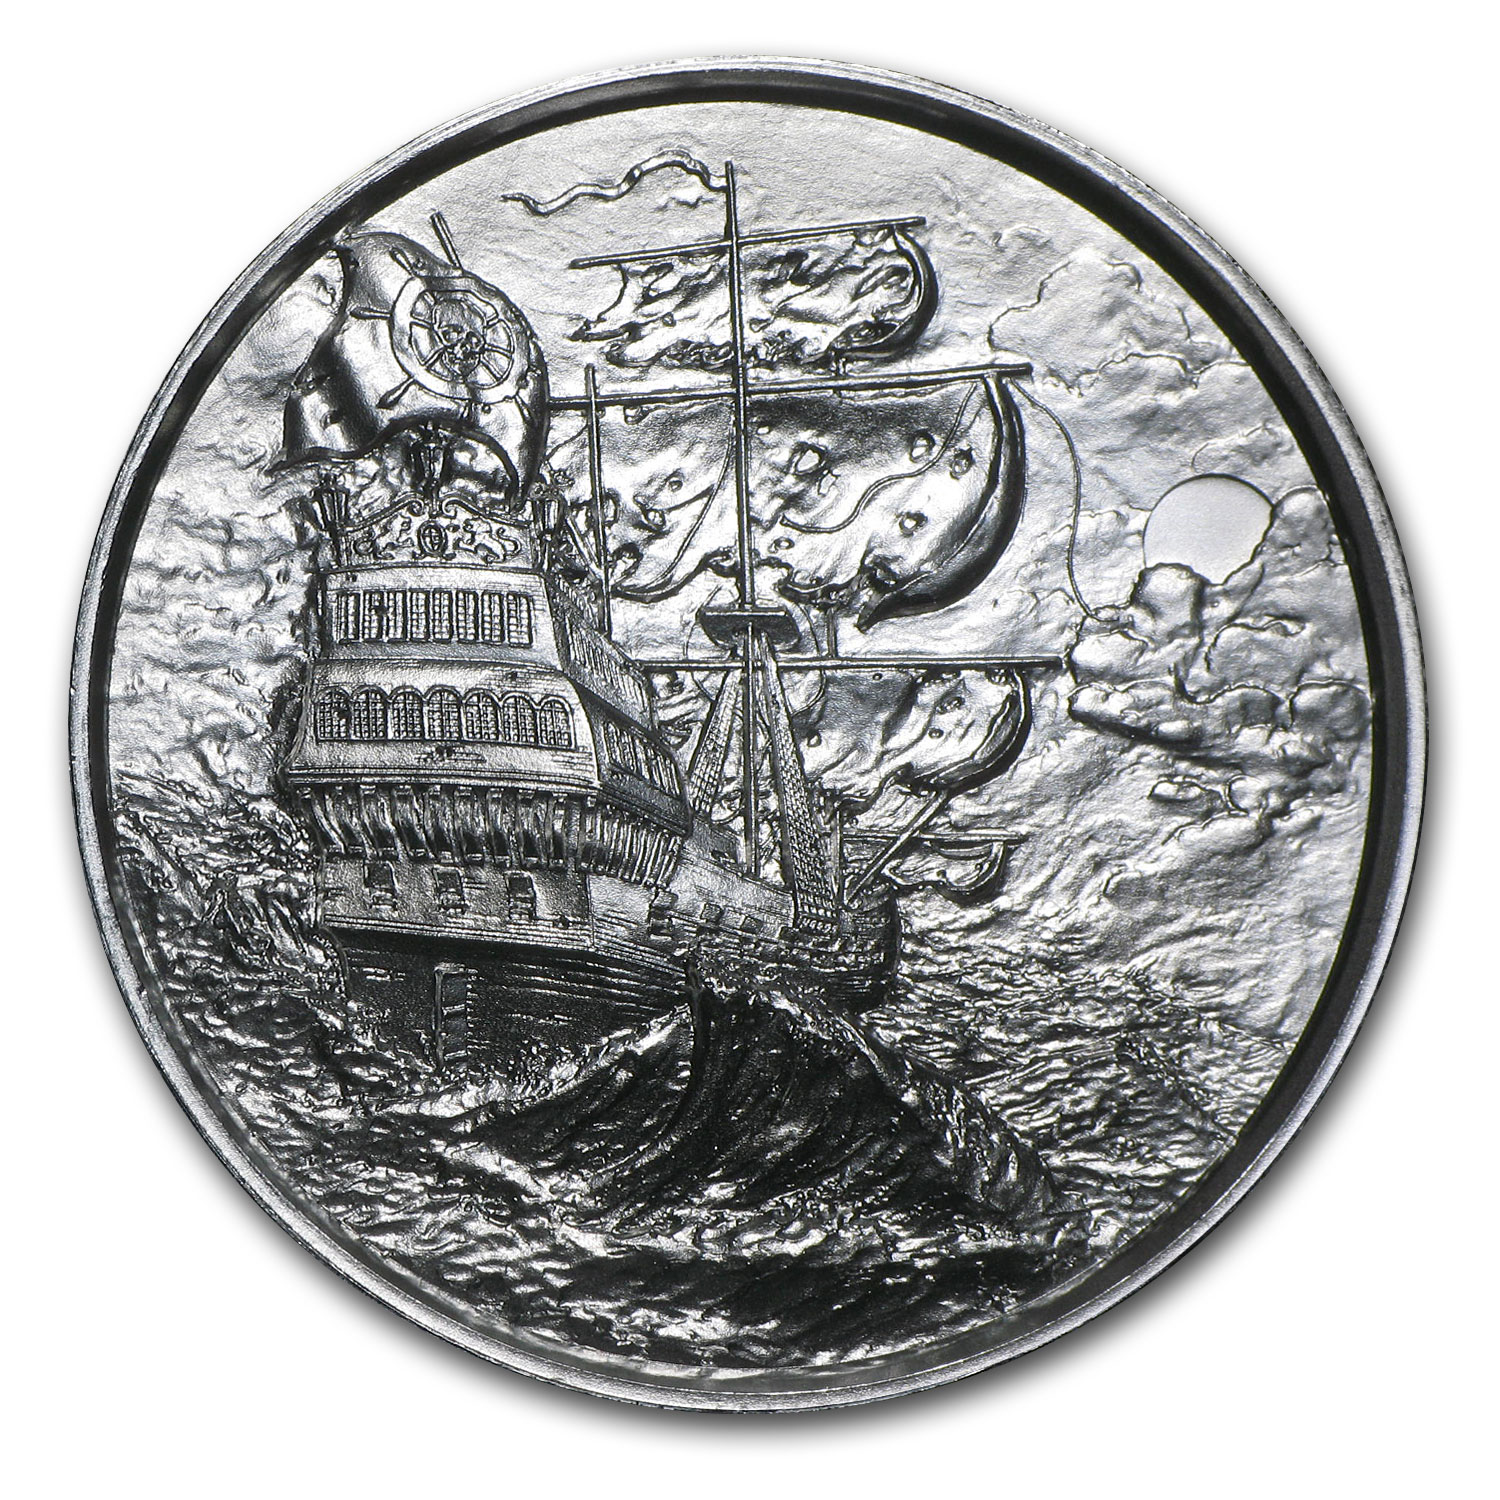 2 oz Silver Round - The Privateer